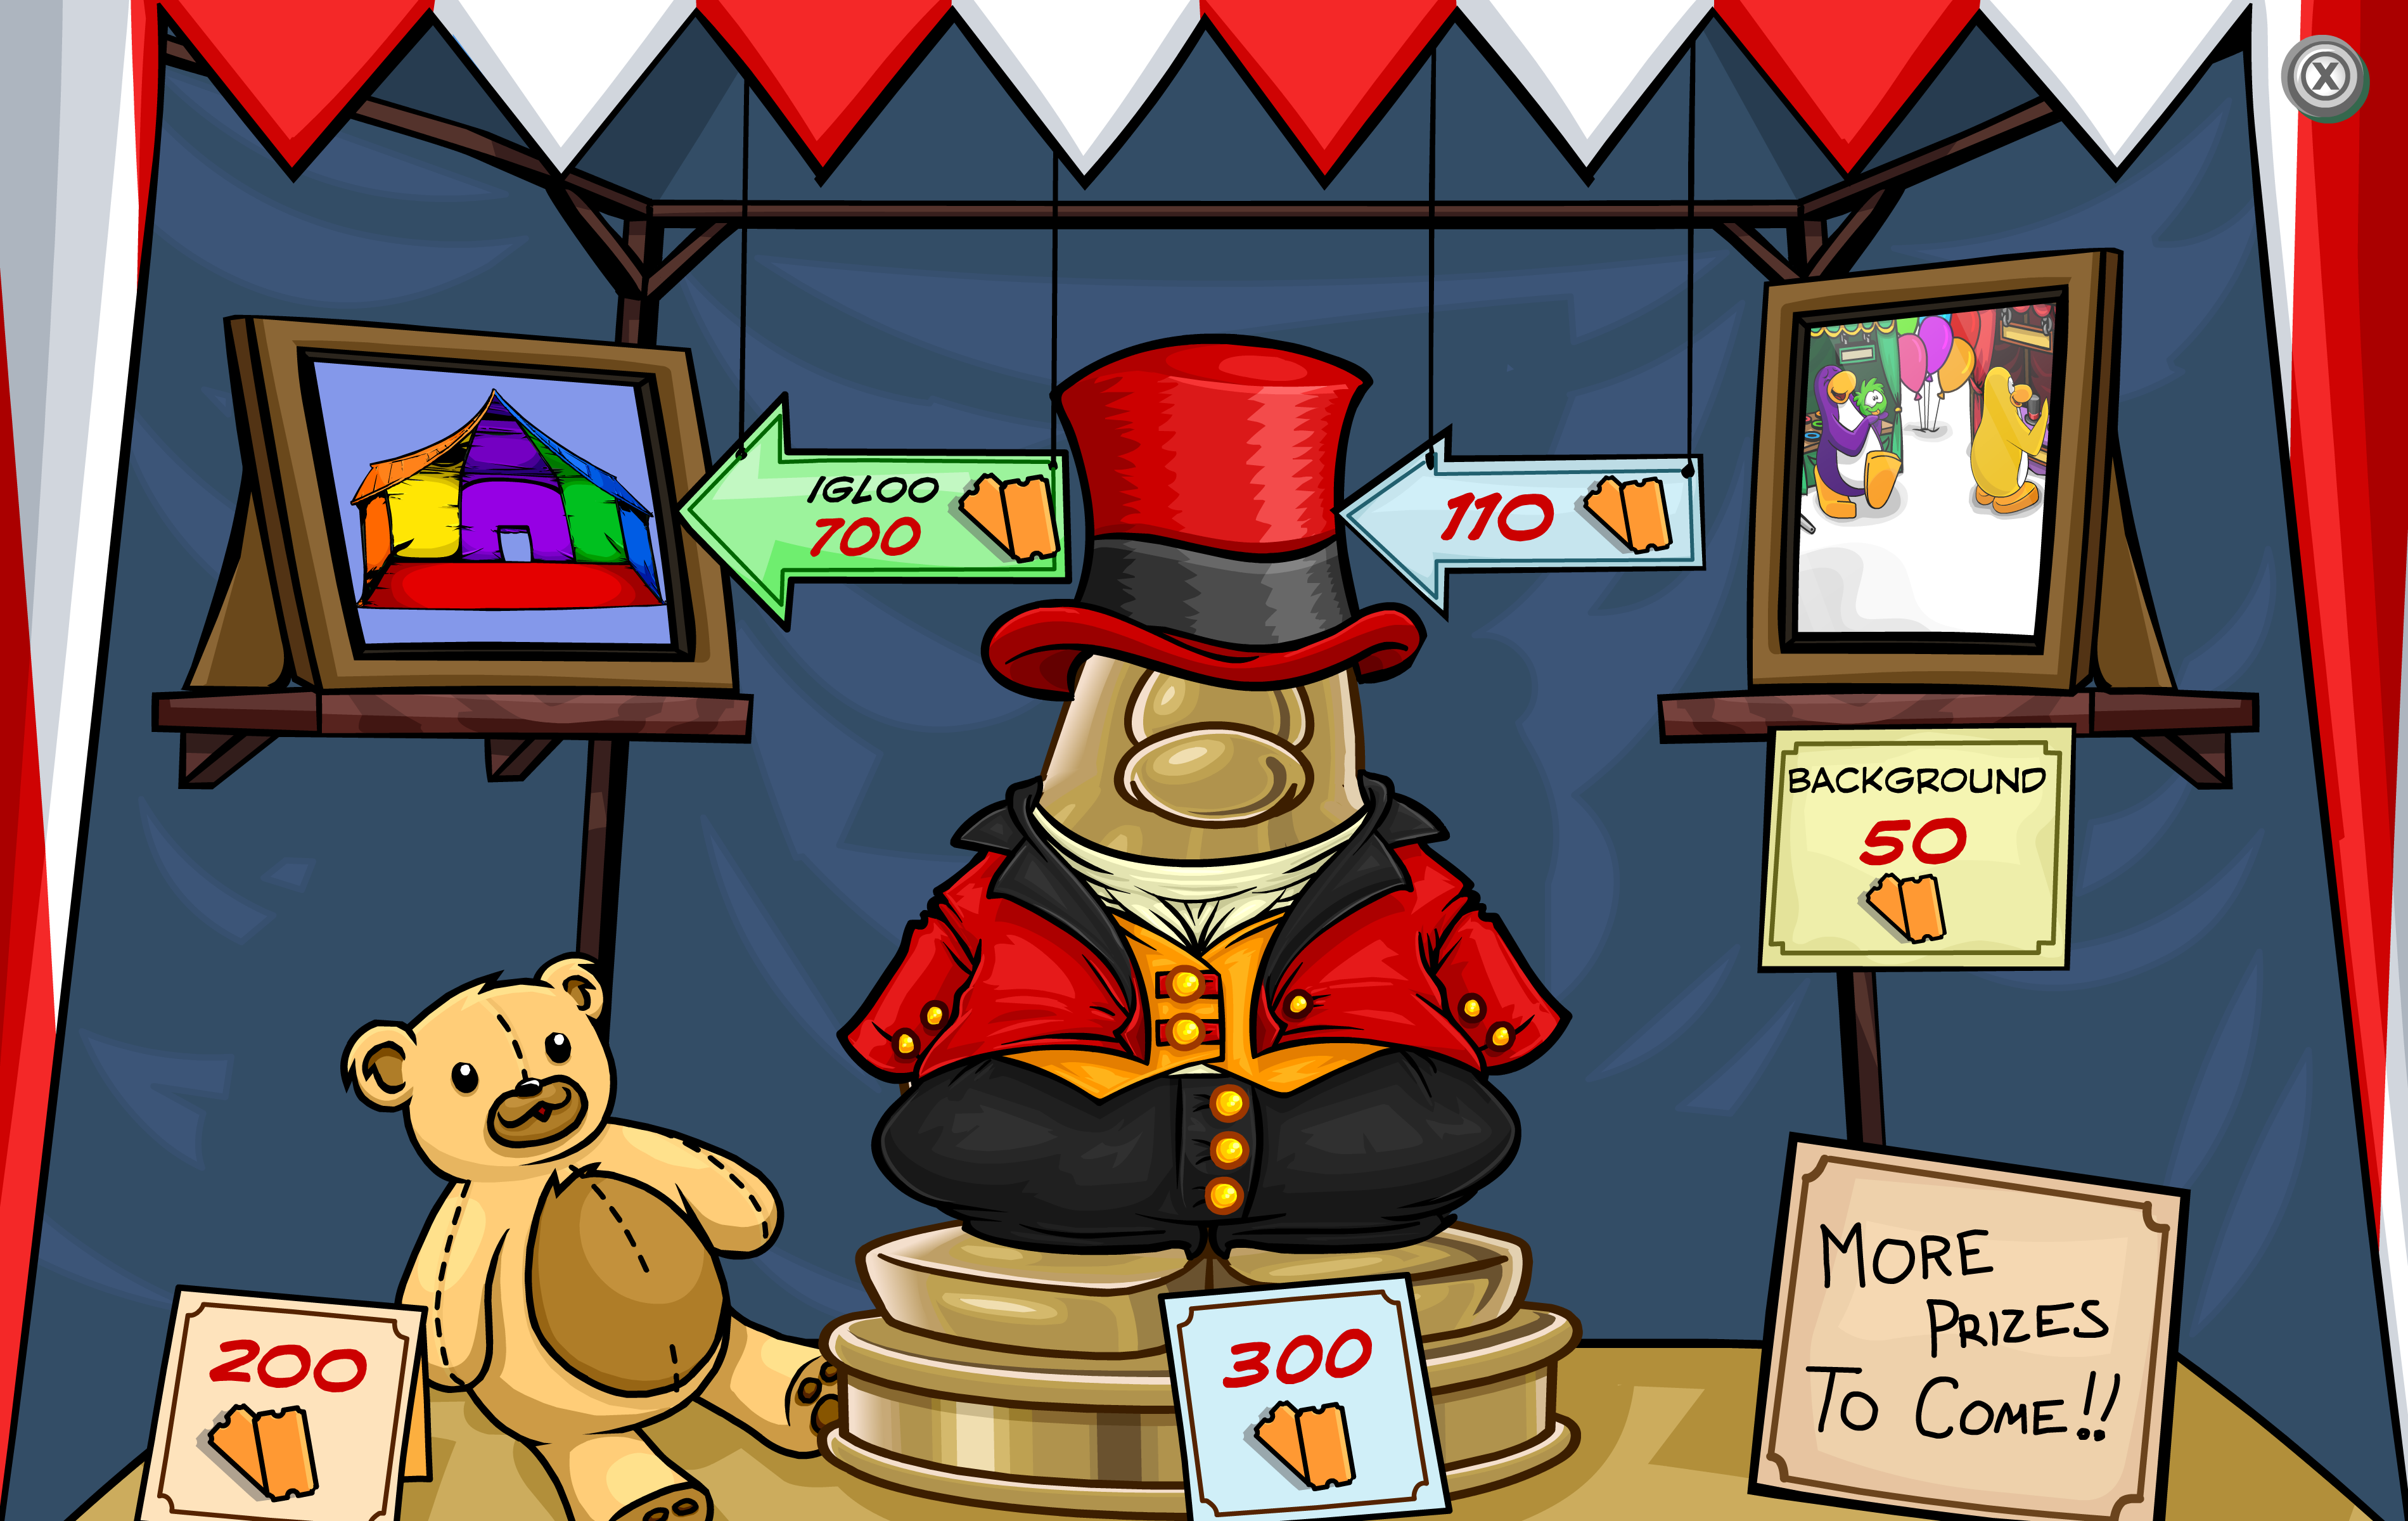 File:Prize-booth.png